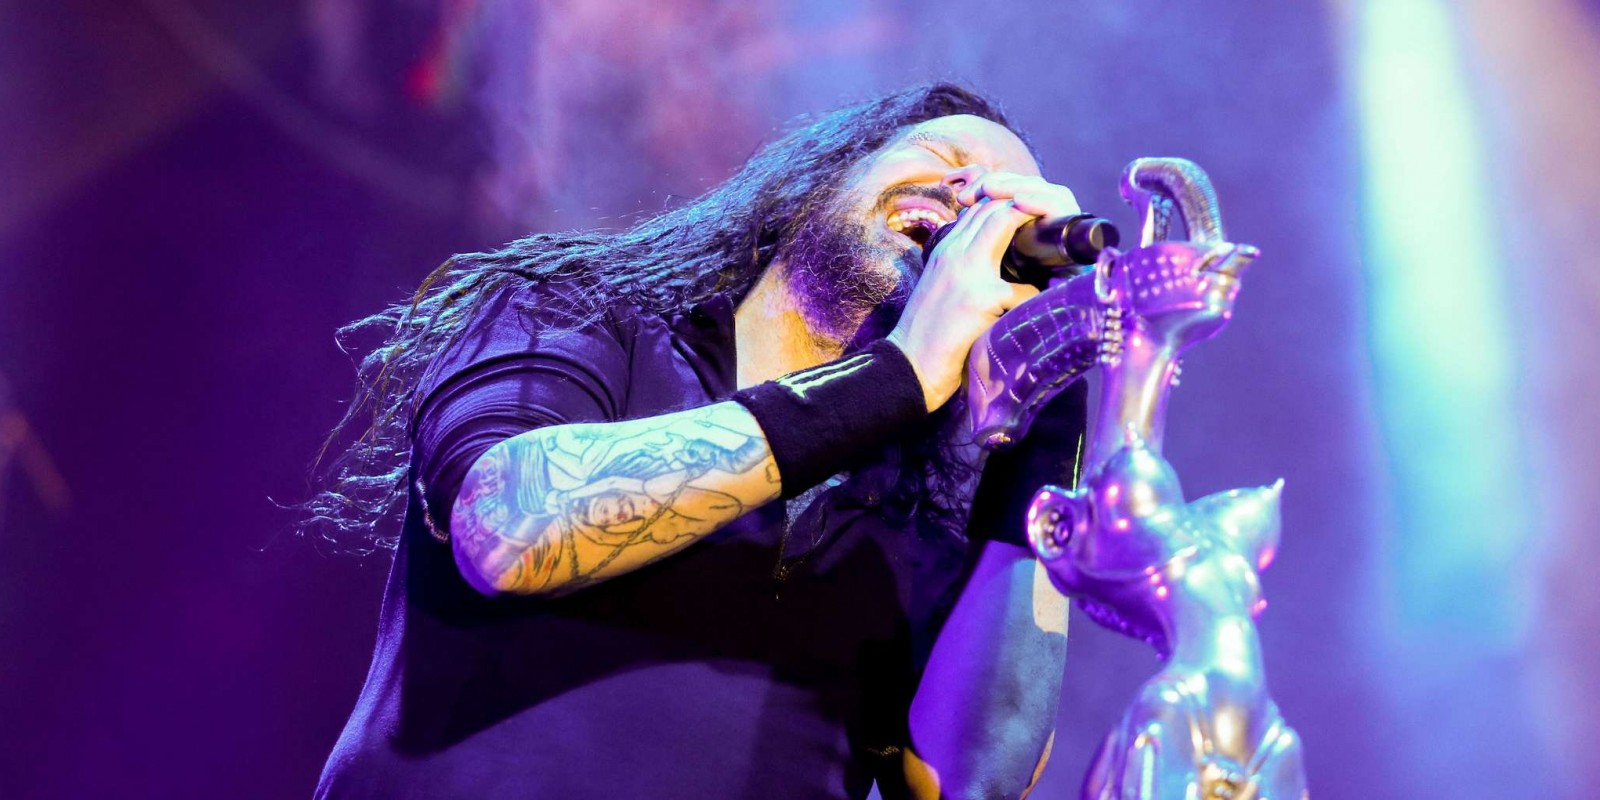 jonathan davis performing live with Korn in Milan